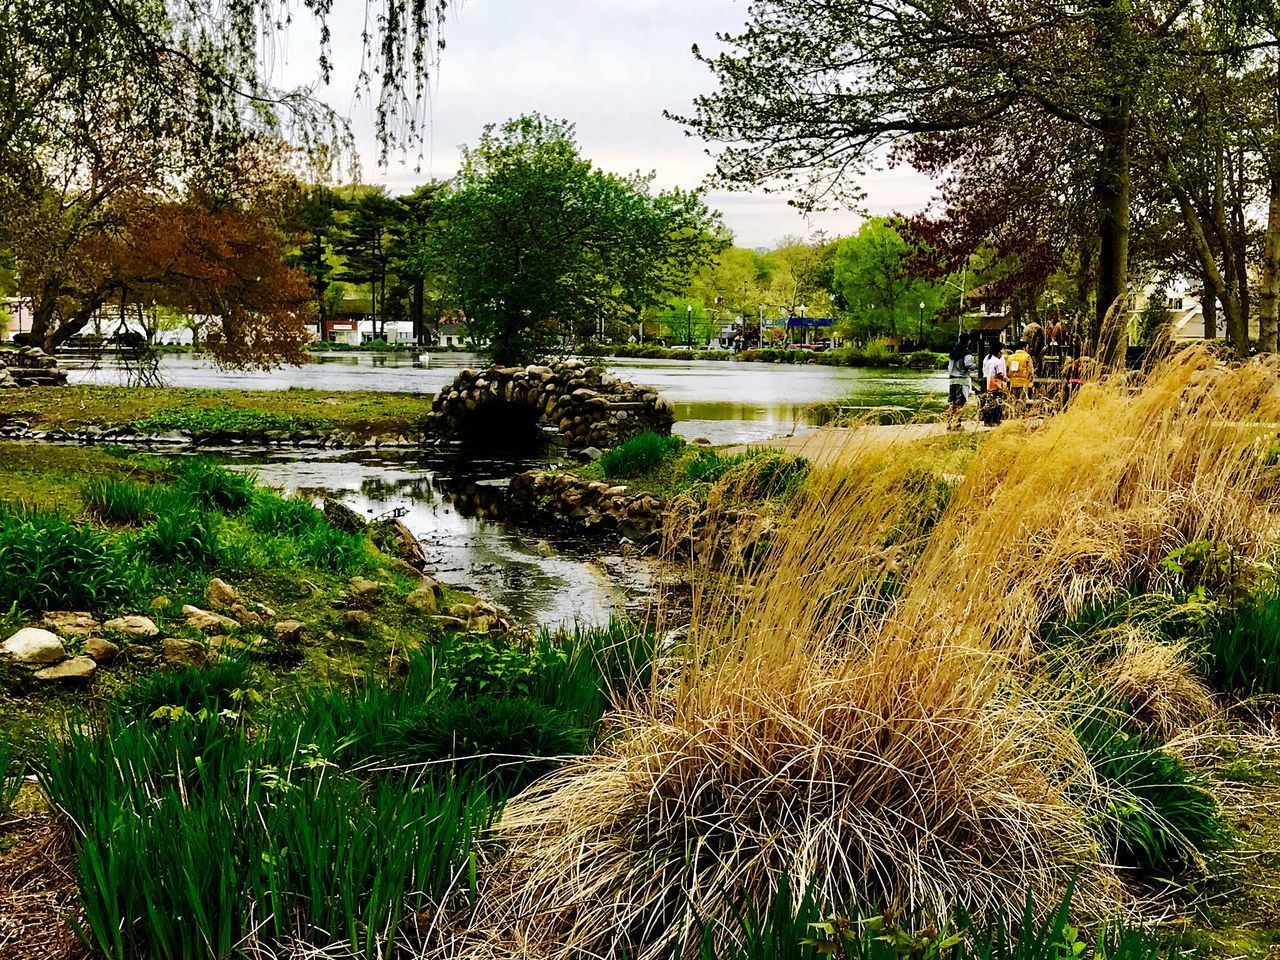 plant, tree, water, growth, beauty in nature, grass, nature, day, scenics - nature, tranquility, lake, tranquil scene, reflection, incidental people, green color, sky, park, land, outdoors